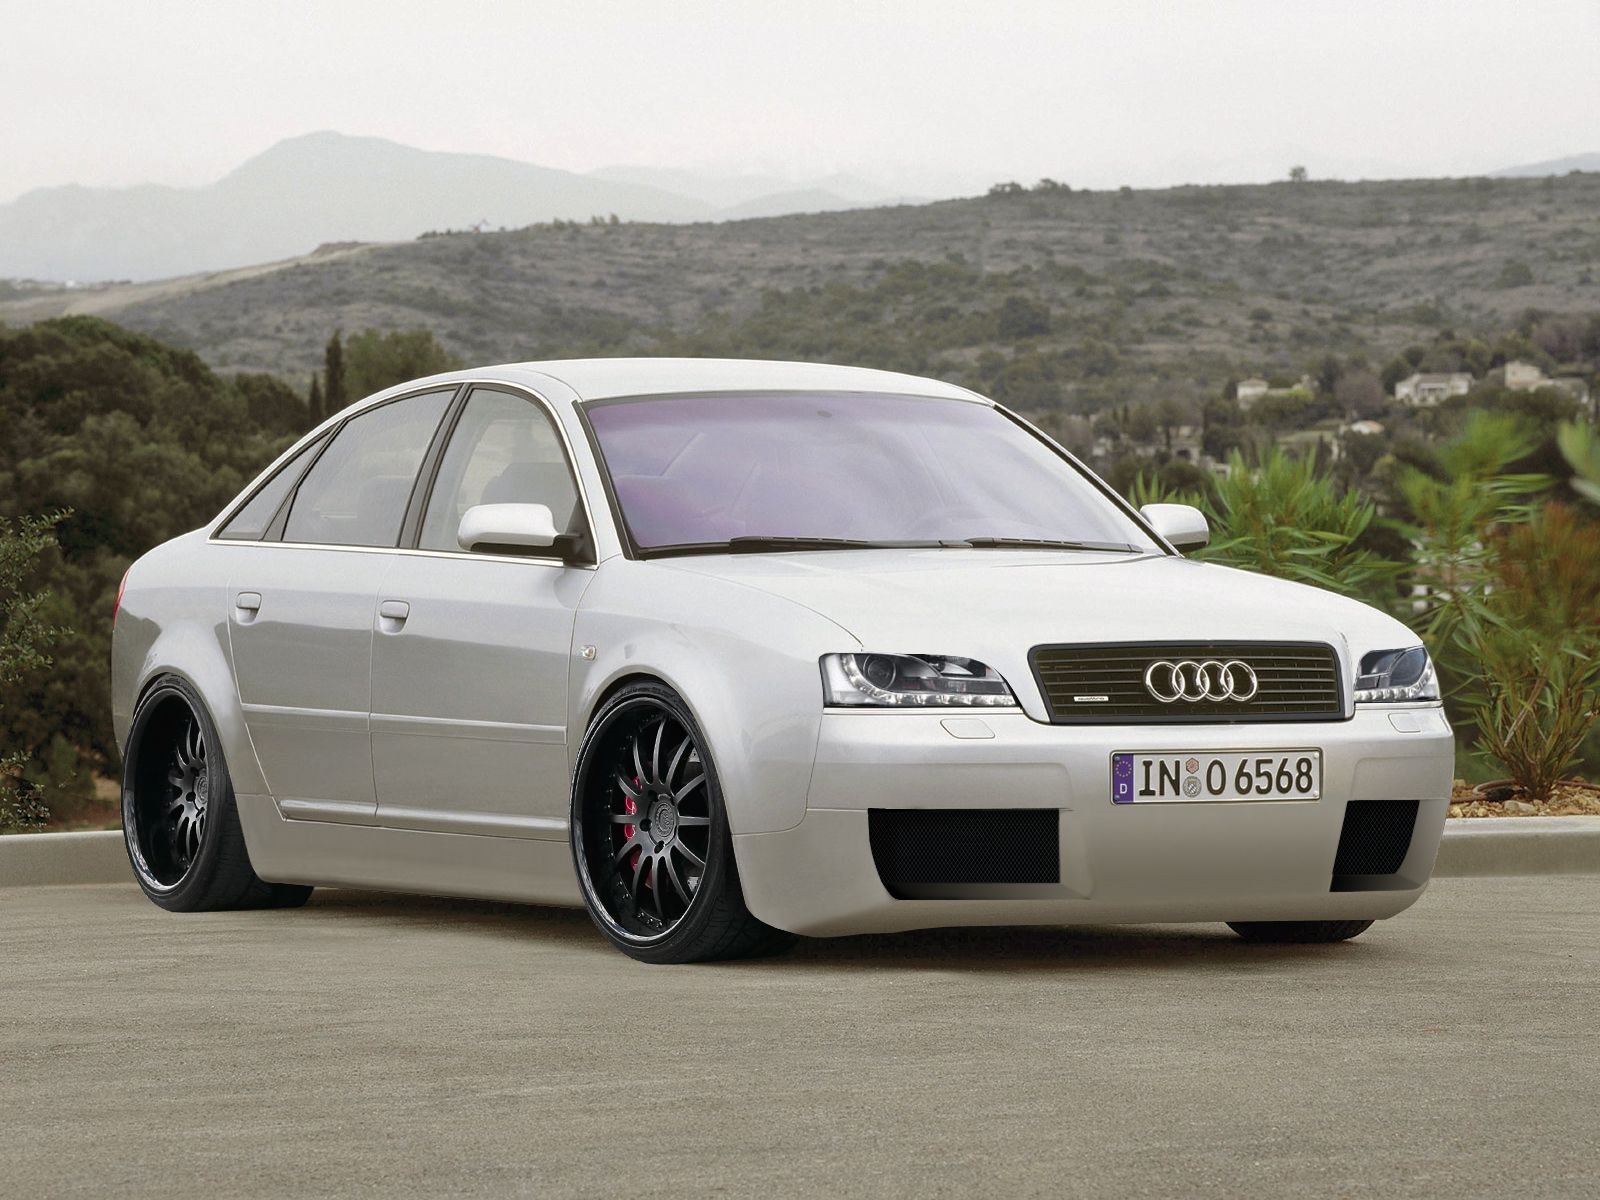 maxresdefault audi youtube quattro allroad watch break tiptronic turbo